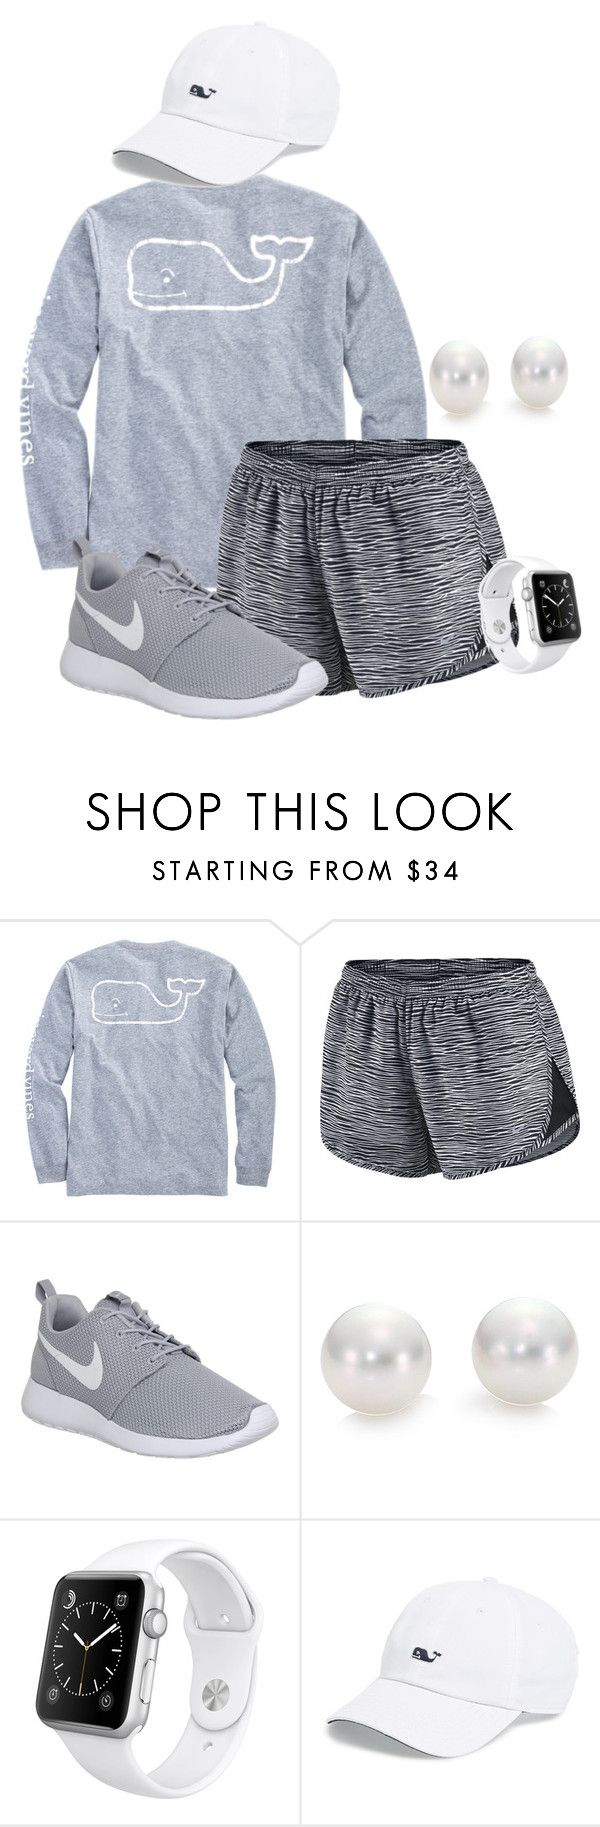 """Lazy day"" by mercedes-designs ❤ liked on Polyvore featuring Vineyard Vines, NIKE, Mikimoto and Apple"